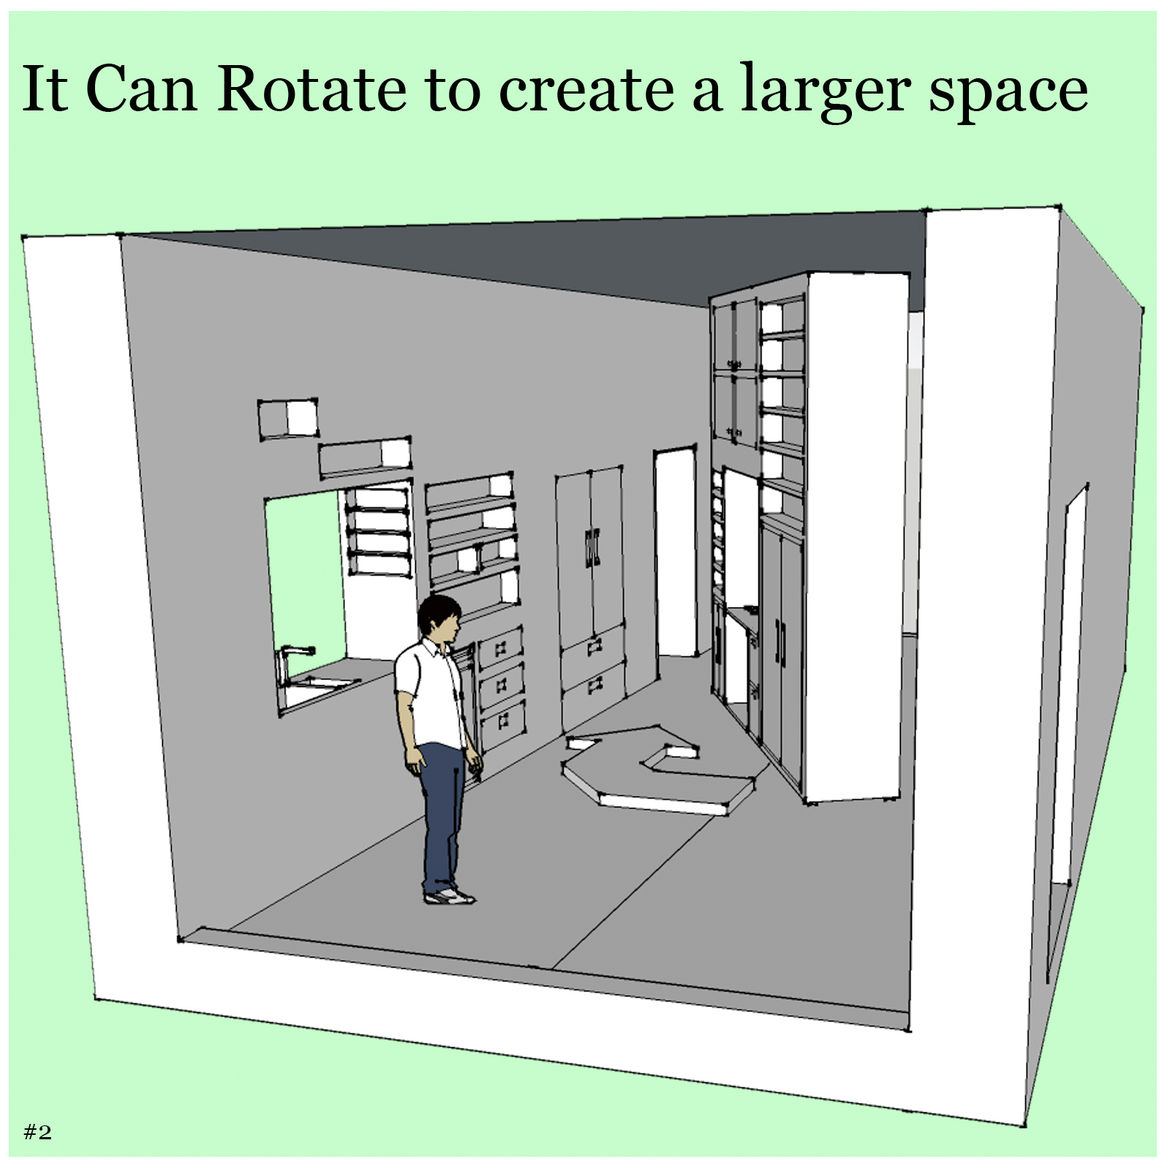 Storage Divider<br /><br /> Submitted by: Name not provided<br /><br /> Designer's Description: <br /><br />While conventional room dividers can be boring and very restrictive only allowing for one alternative the Storage Divider allows for the freedom of